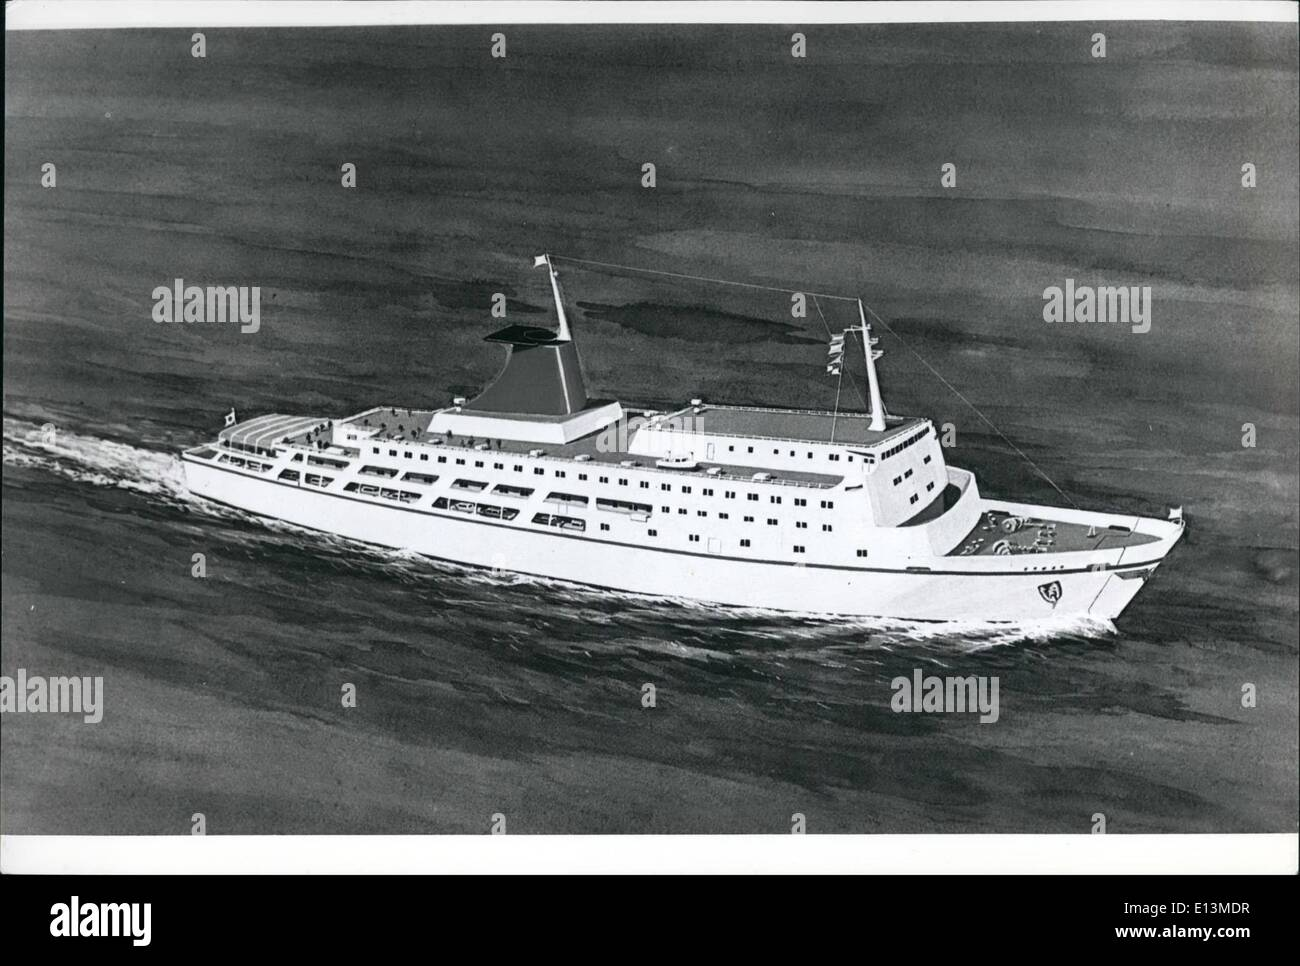 Mar. 22, 2012 - Fast-Car Ferry For Japan: A drawing of a new 6,000-ton car-ferry which will ply between Kawasaki Stock Photo